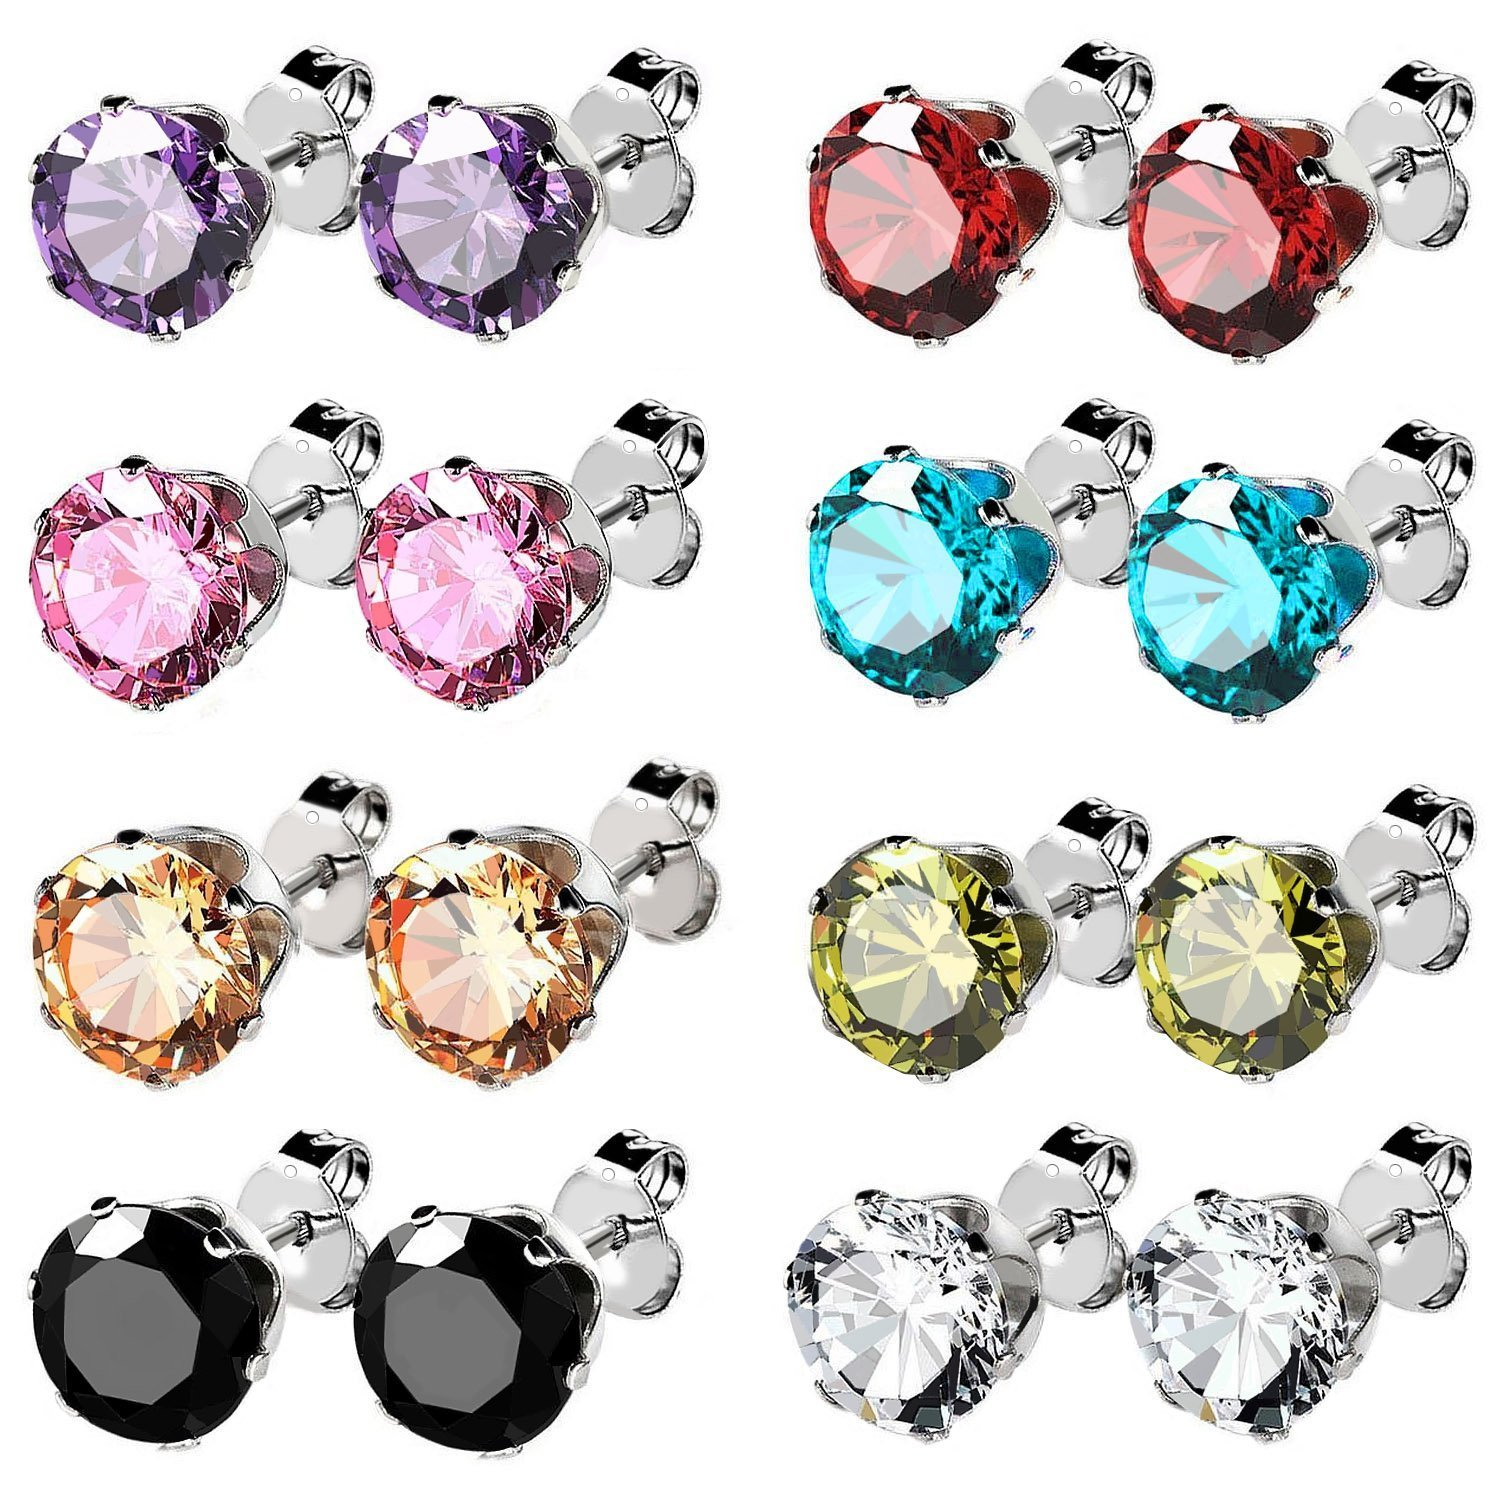 UHIBROS Jewelry Stainless Steel Womens Cubic Zirconia Stud Earrings Multicolor Set Piercing 8 Pairs (cubic-zirconia)